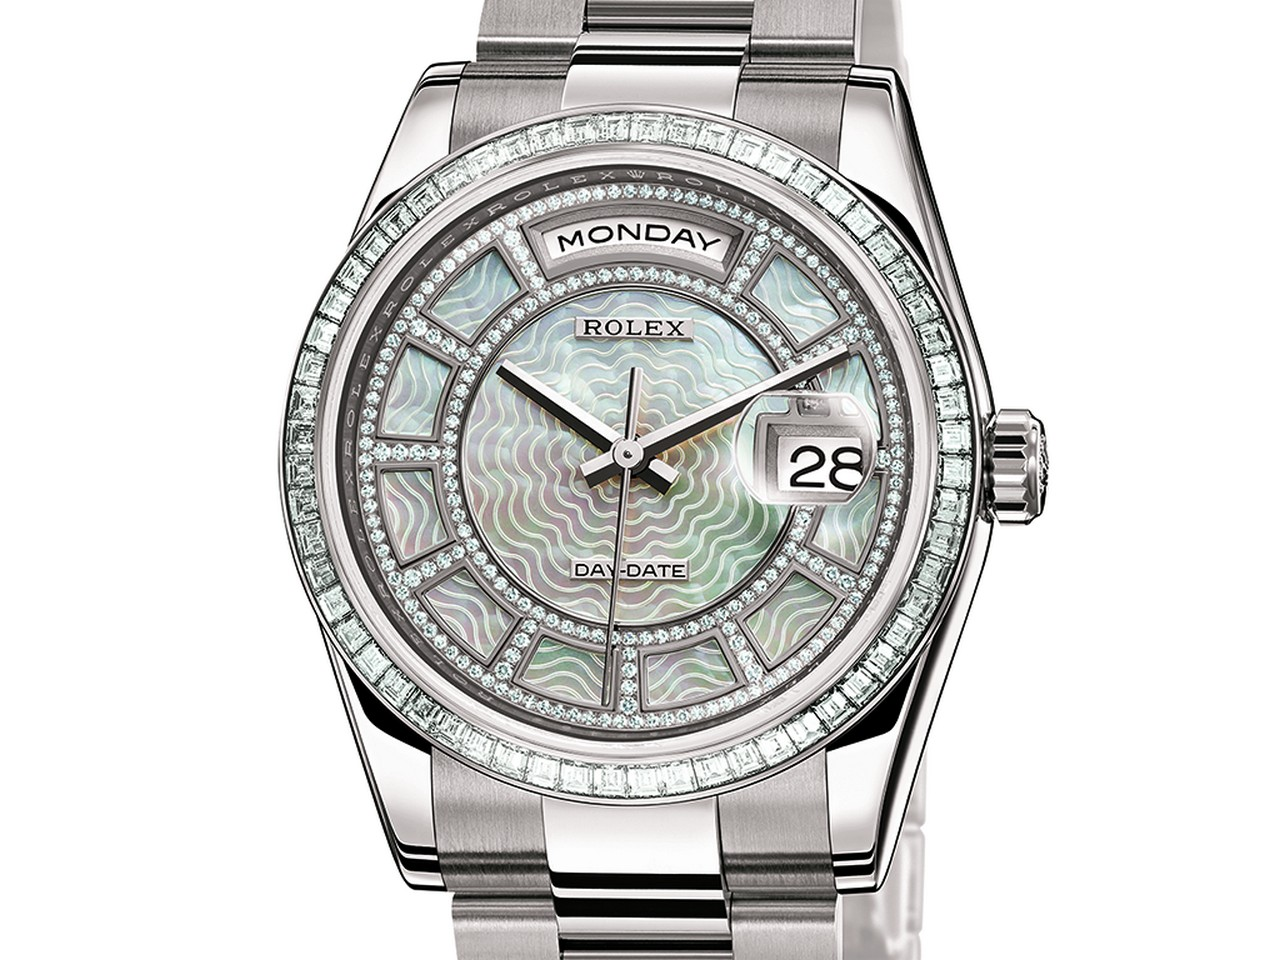 baselworld-2013-oyster-perpetual-day-date-sertie_0-100_9